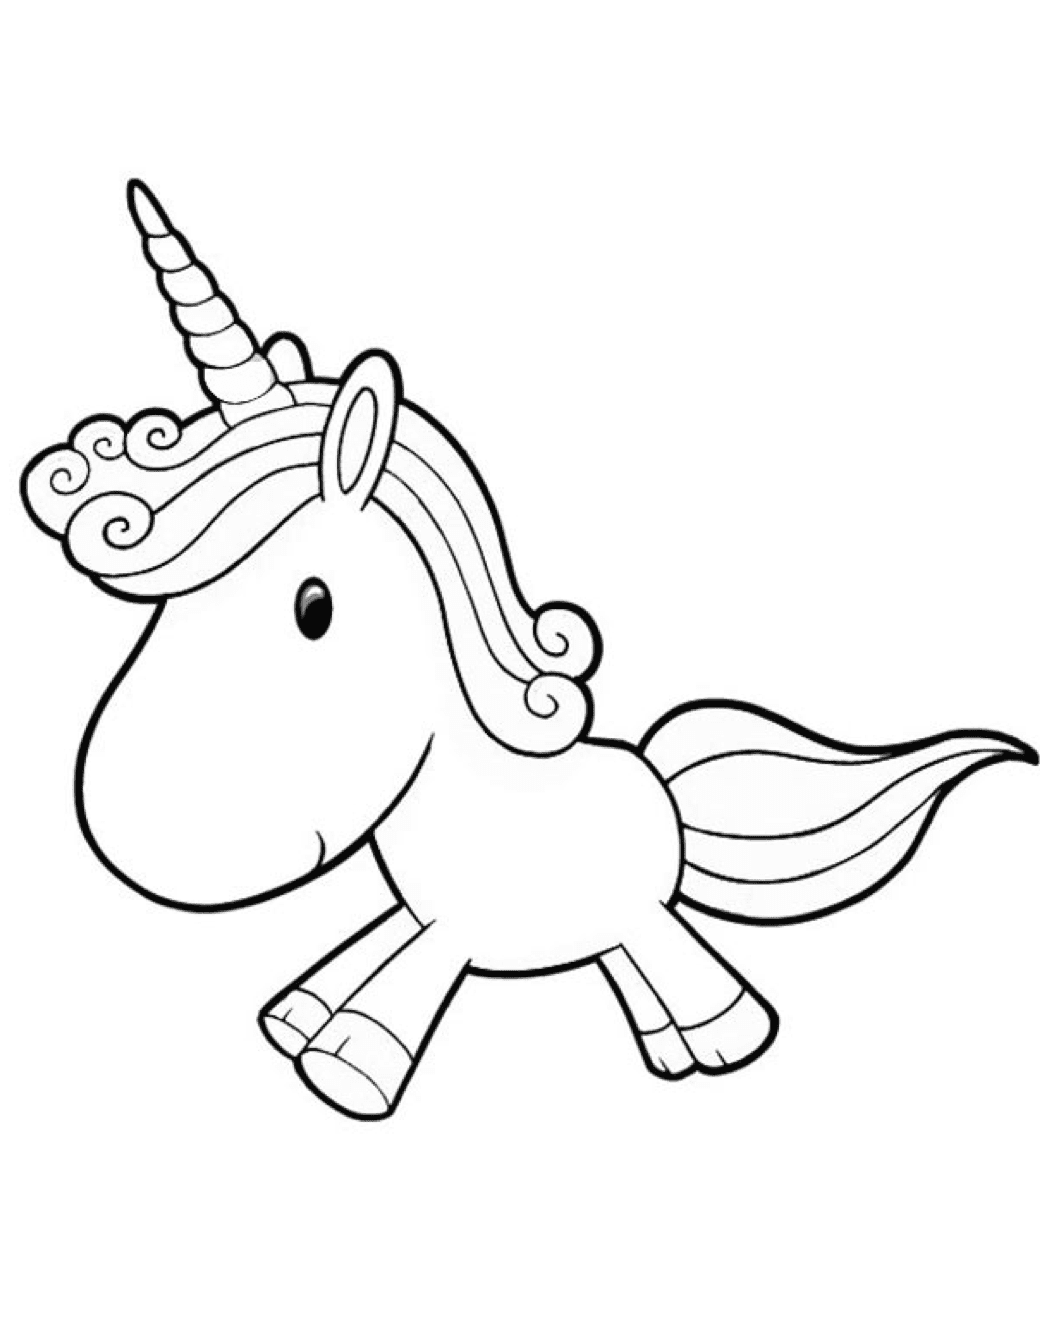 Cartoon Unicorn Coloring Page coloring page & book for kids.